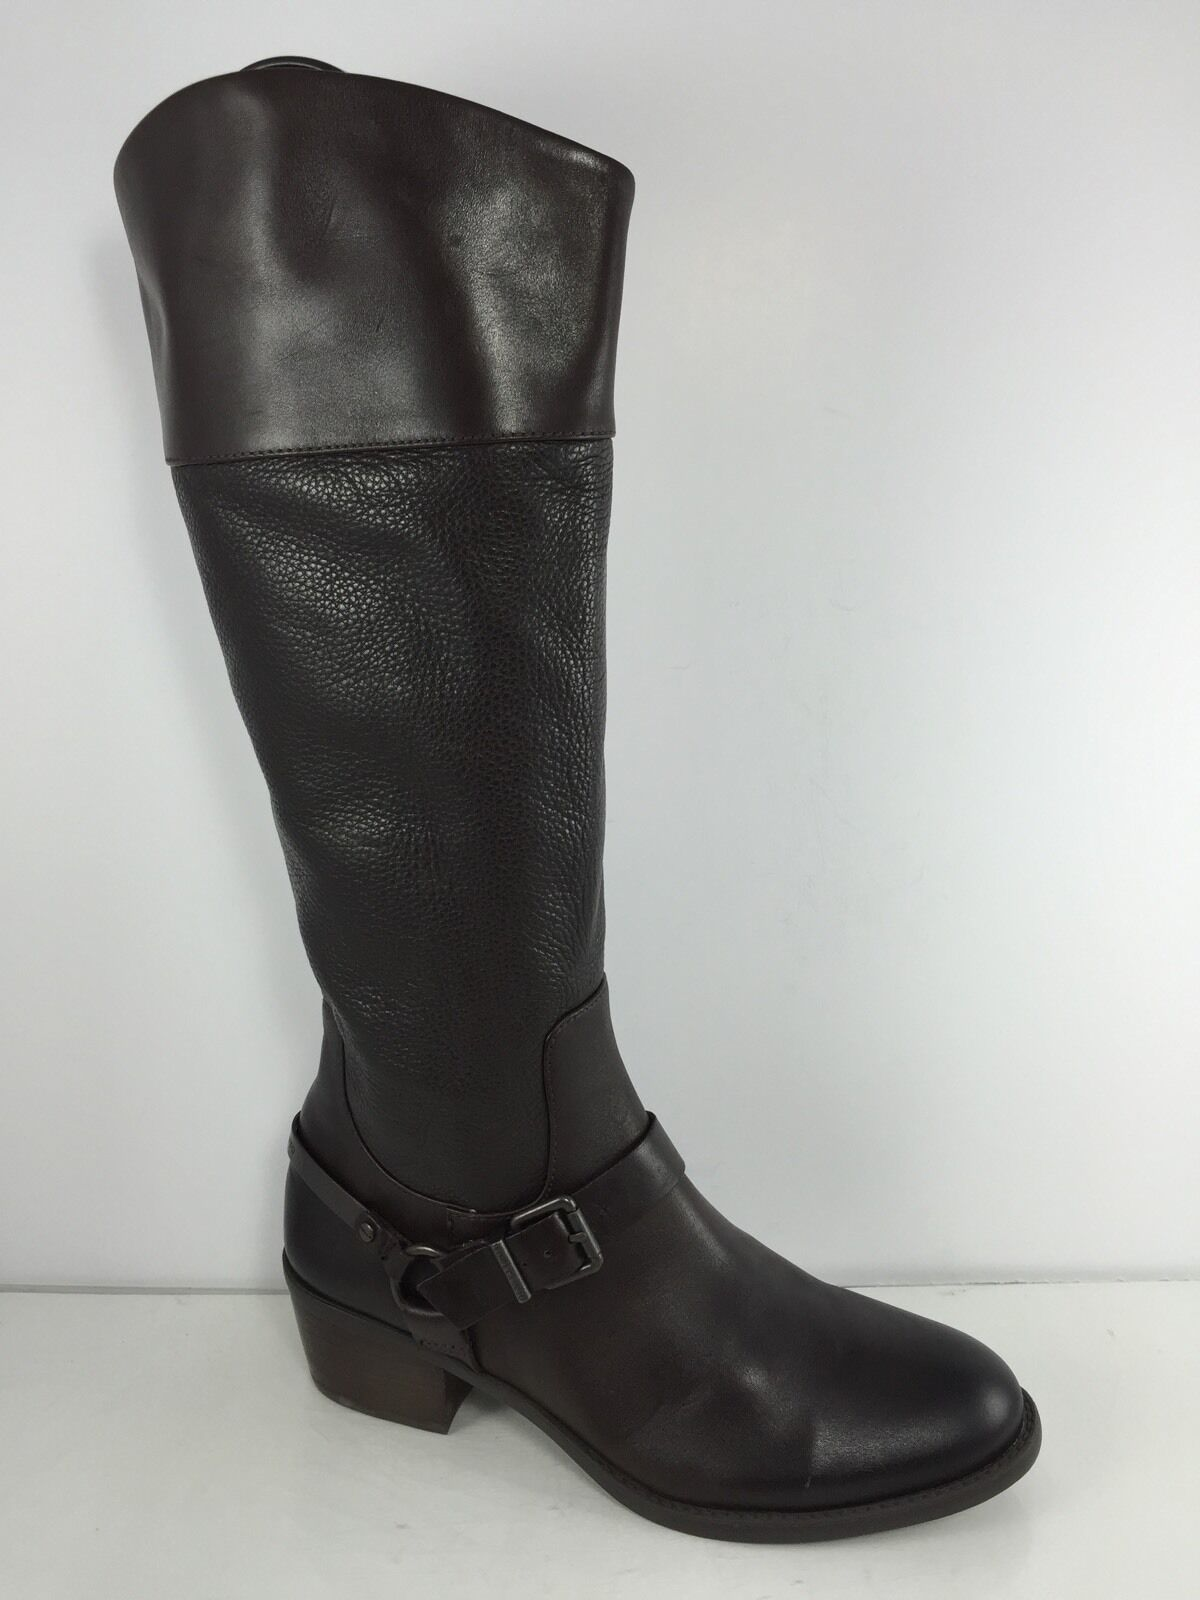 Vince Camuto Womens Dark Brown Leather Knee Boots 9 M